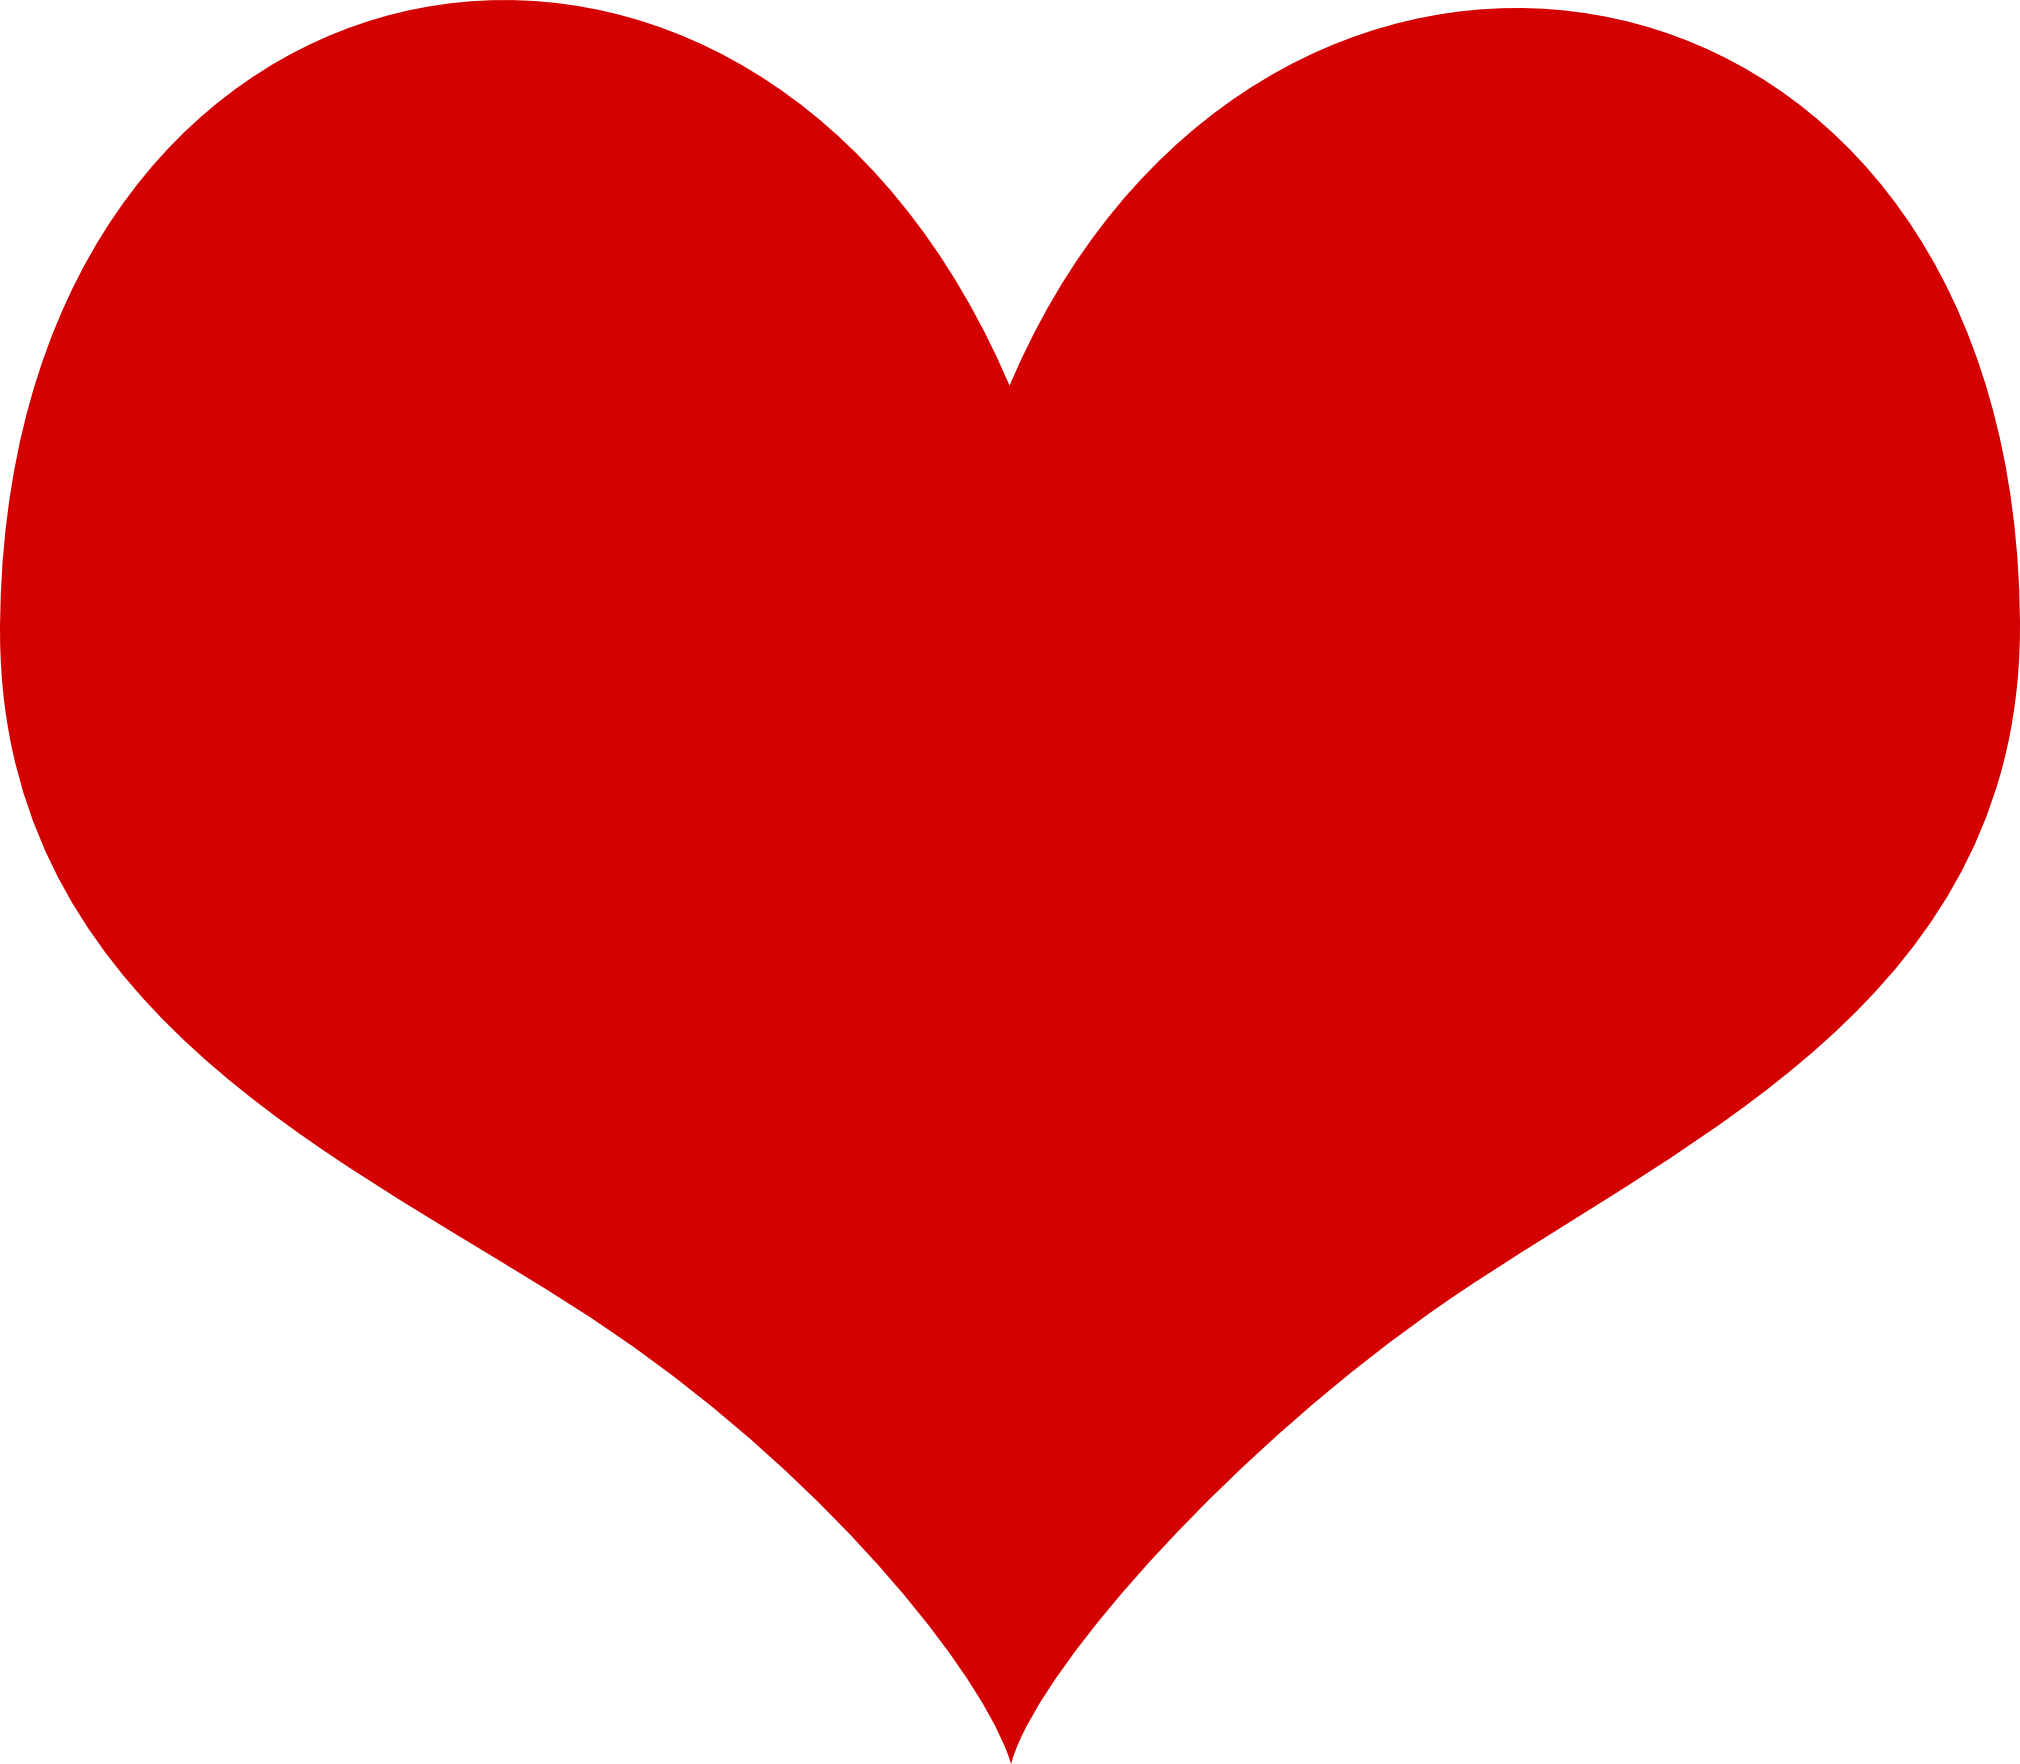 Clipart pictures of hearts